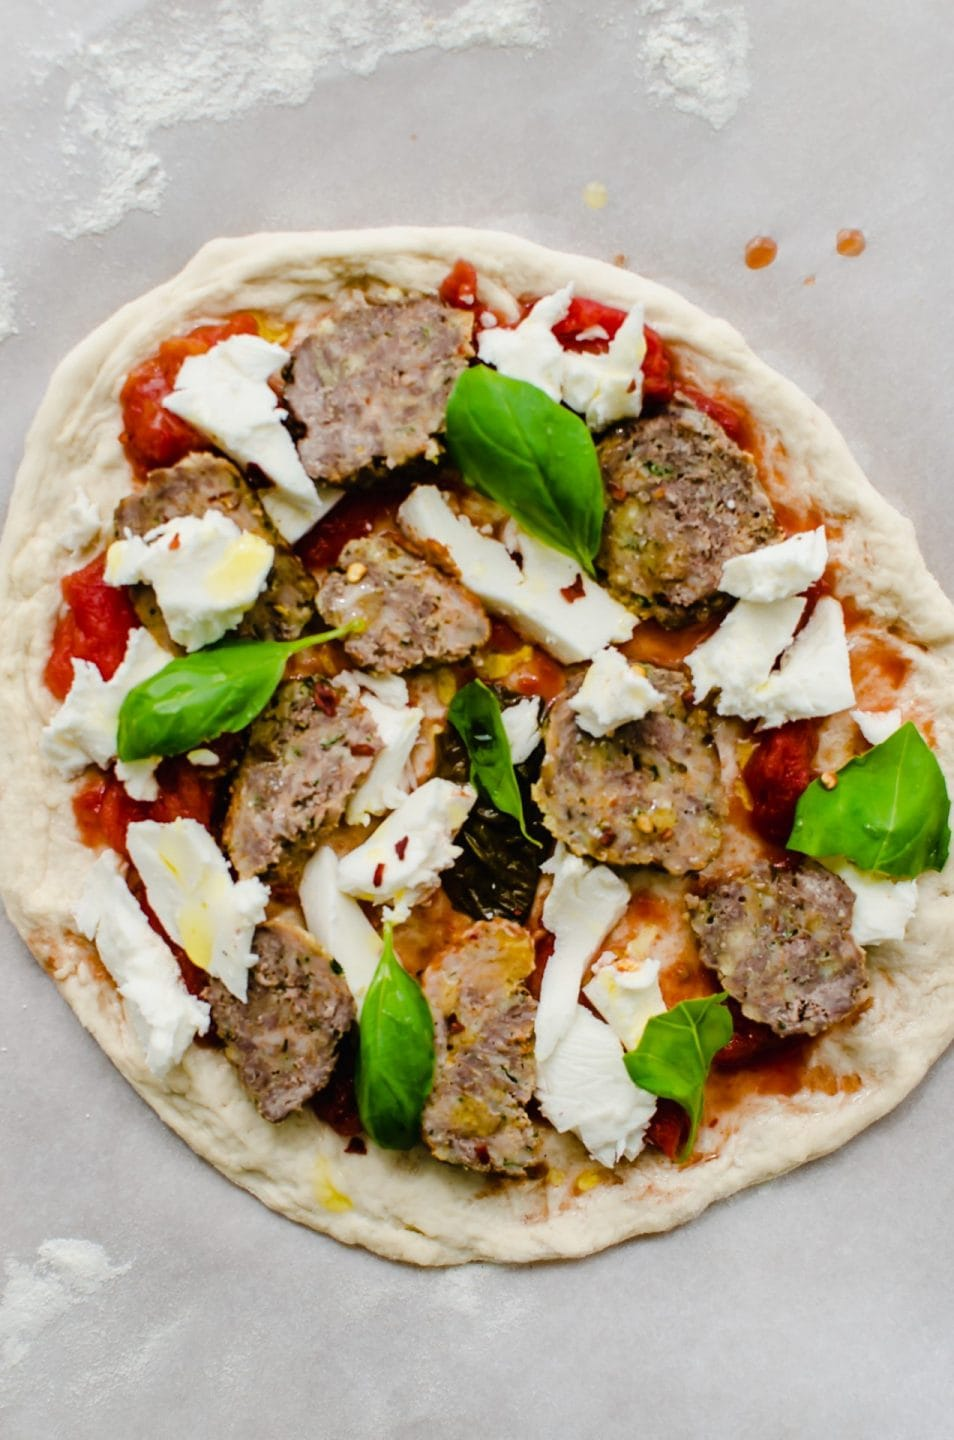 An unbaked meatball pizza on a sheet of parchment paper.